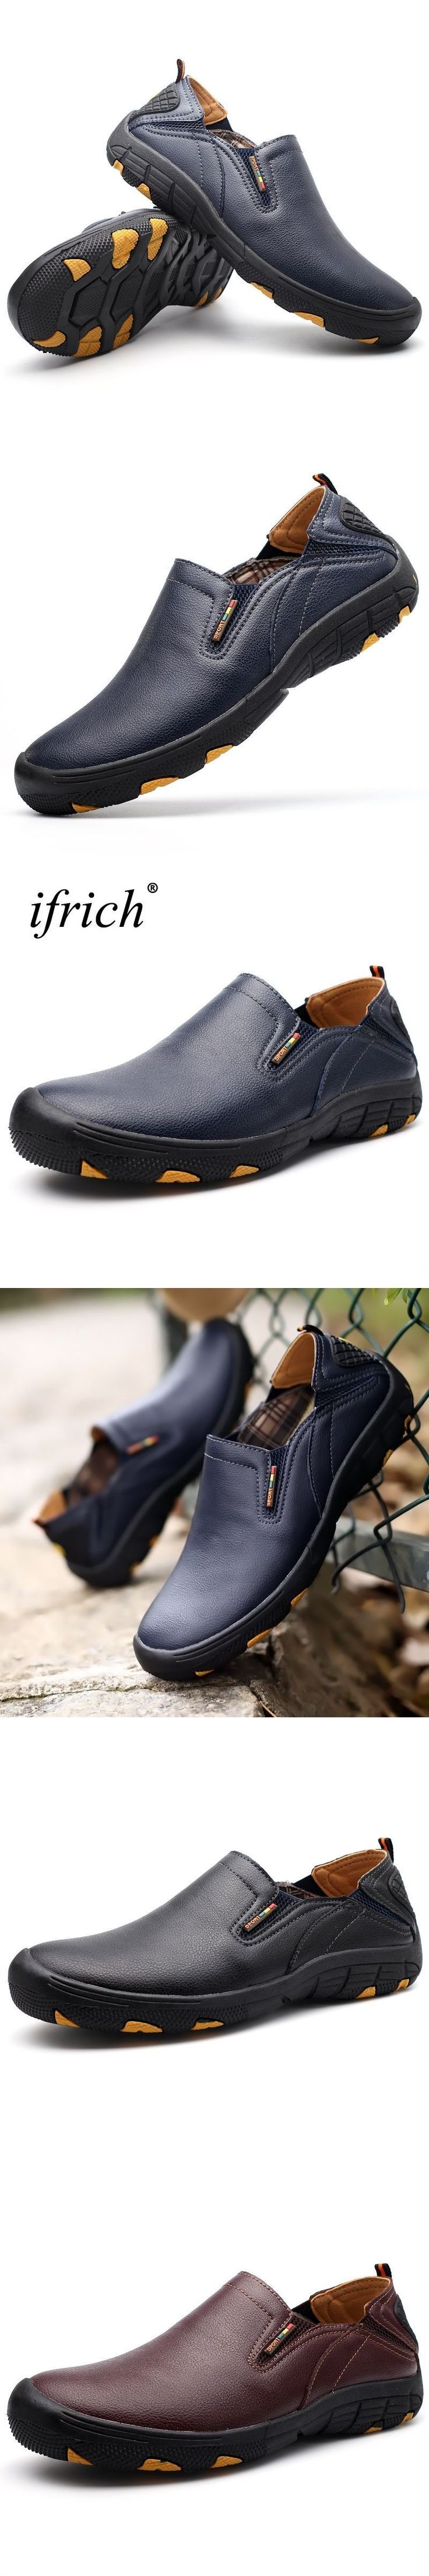 2017 New Leather Outdoor Walking Shoes For Men Slip On Mountain Hiking Shoes Black Trekking Sneakers Men Hiking Shoes #walkingshoes